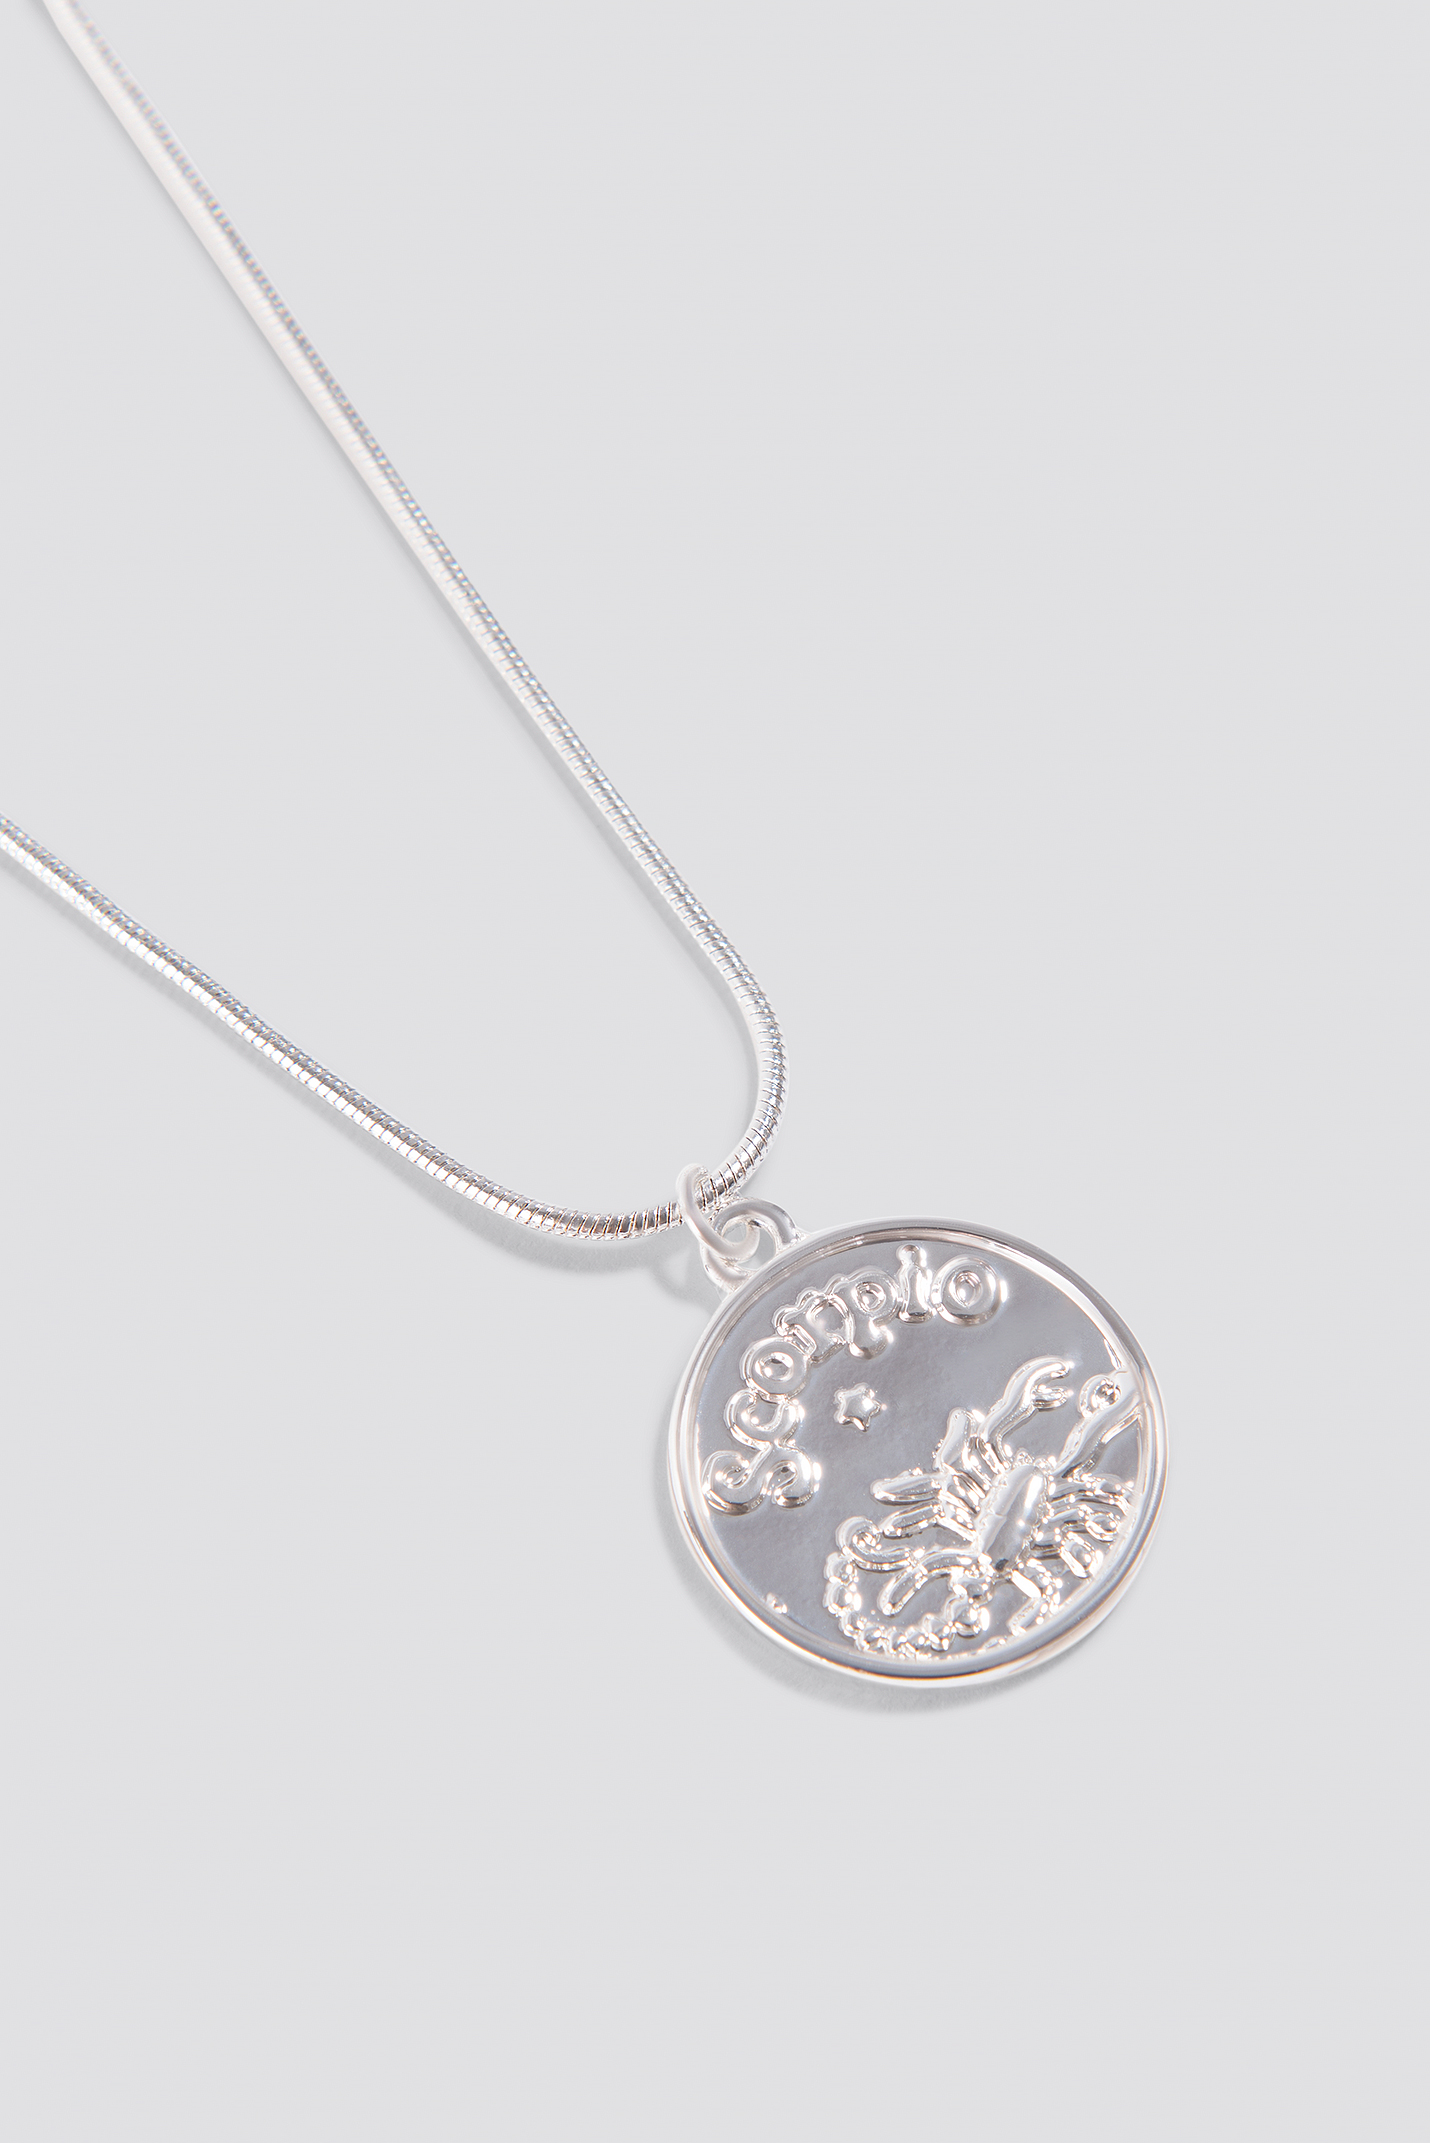 Zodiac Scorpio Necklace NA-KD.COM